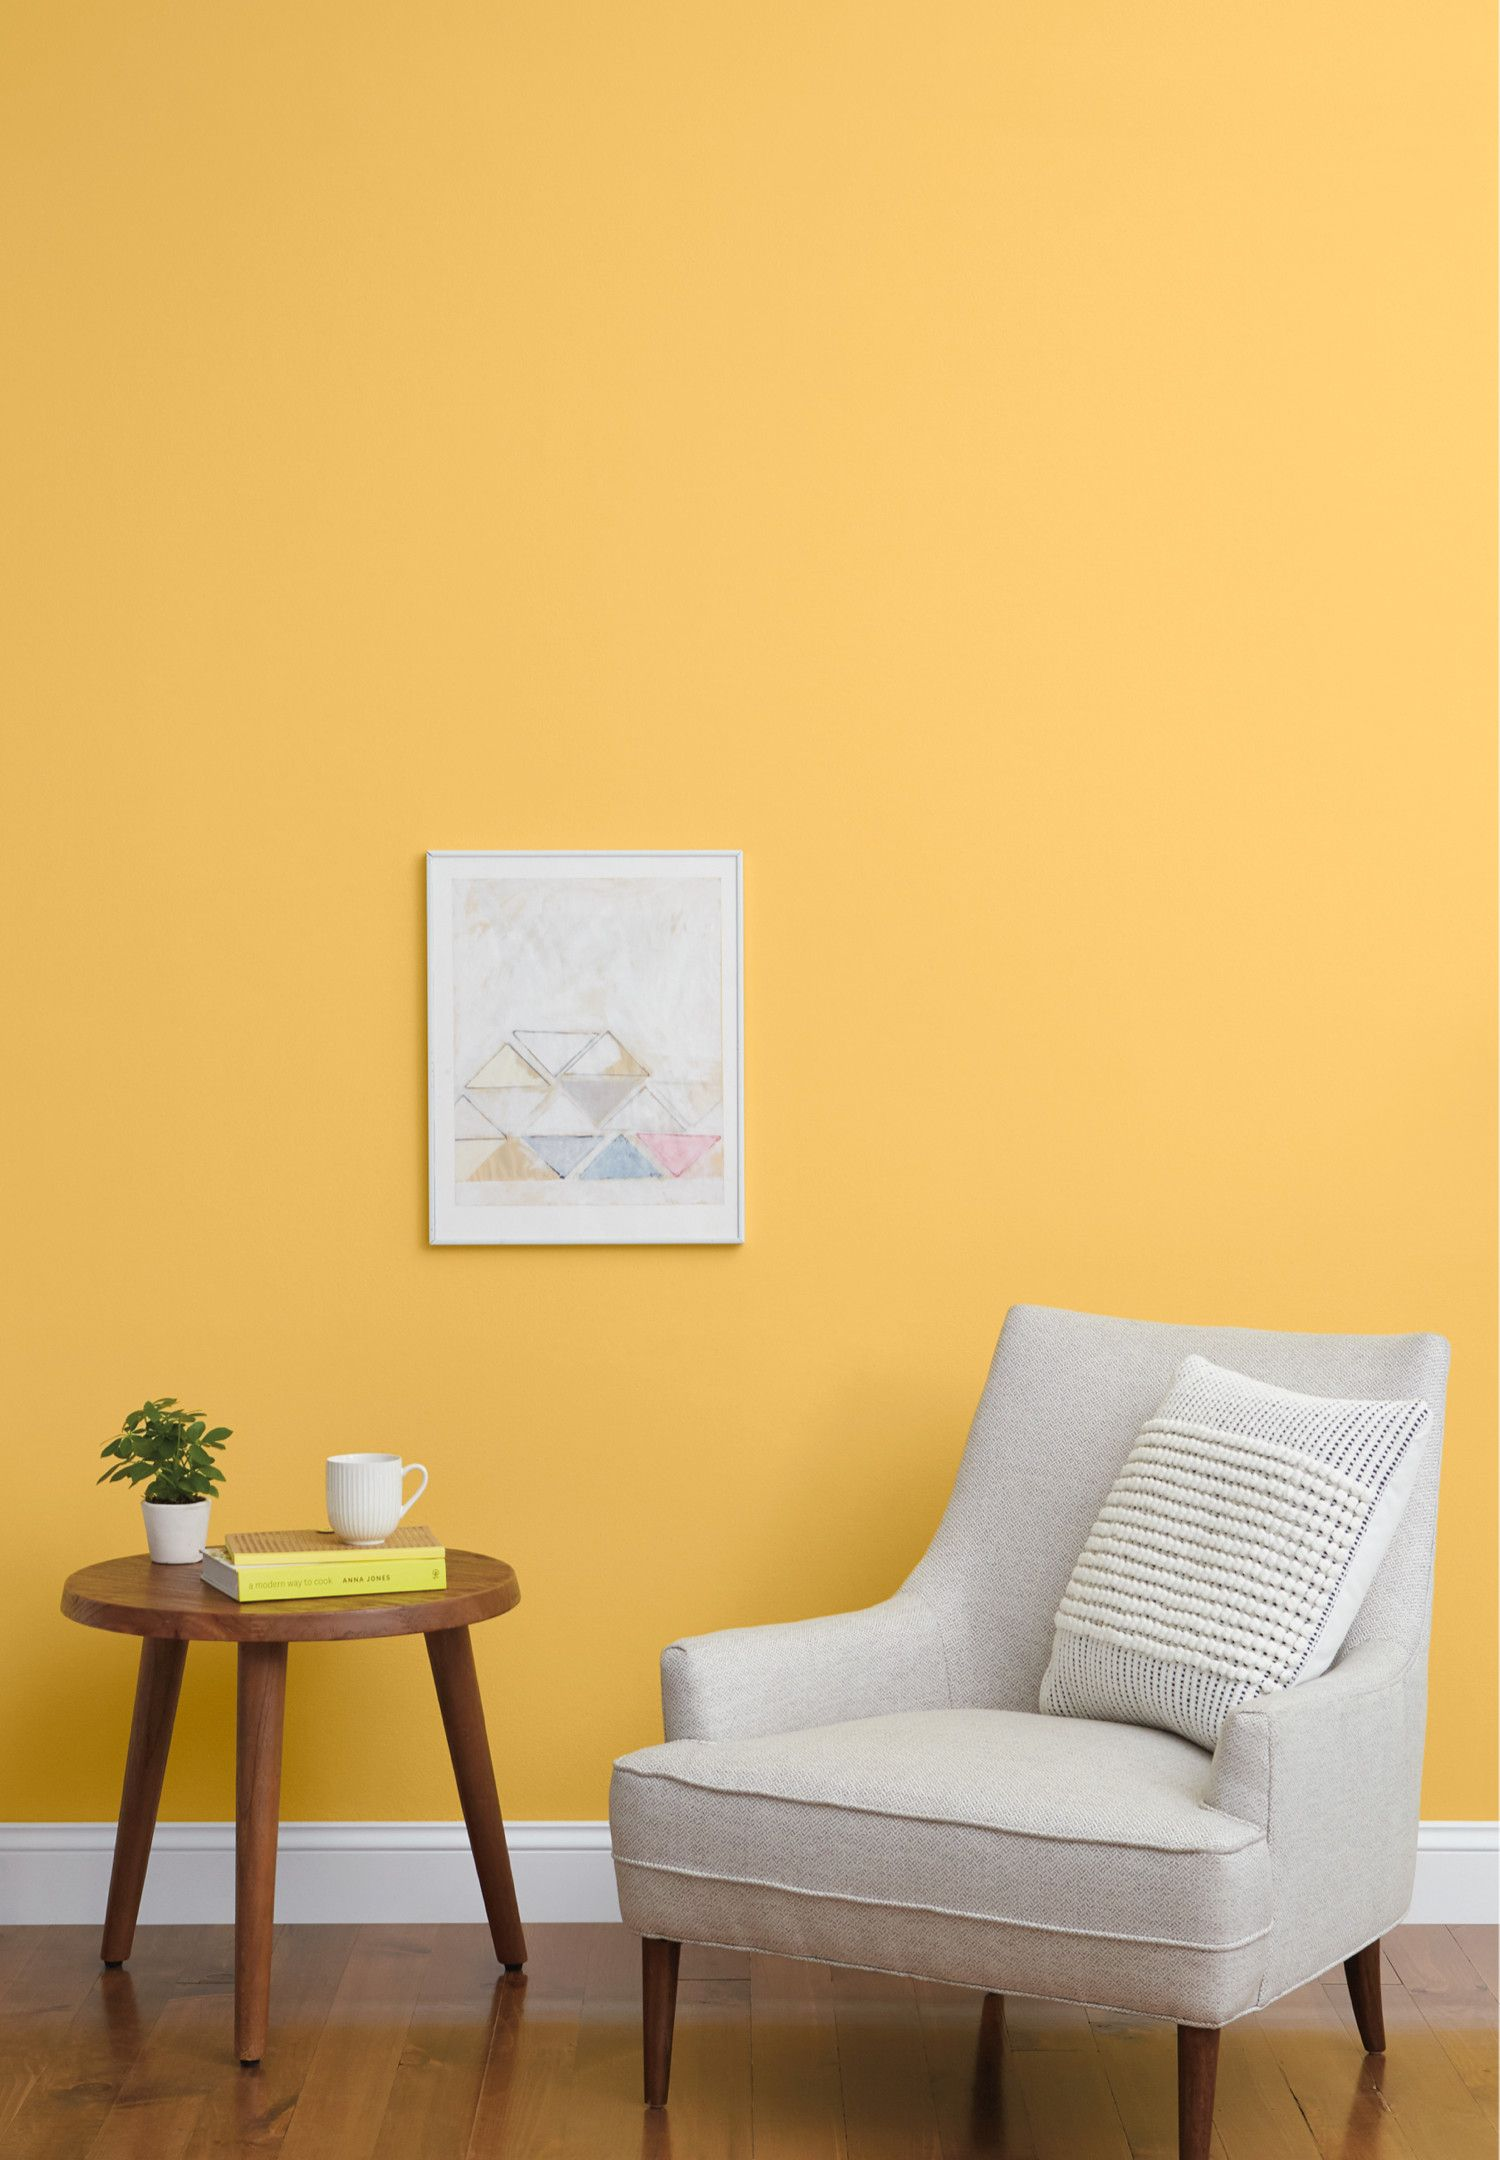 golden hour paint colors for living room best bedroom on best color to paint living room walls id=16211